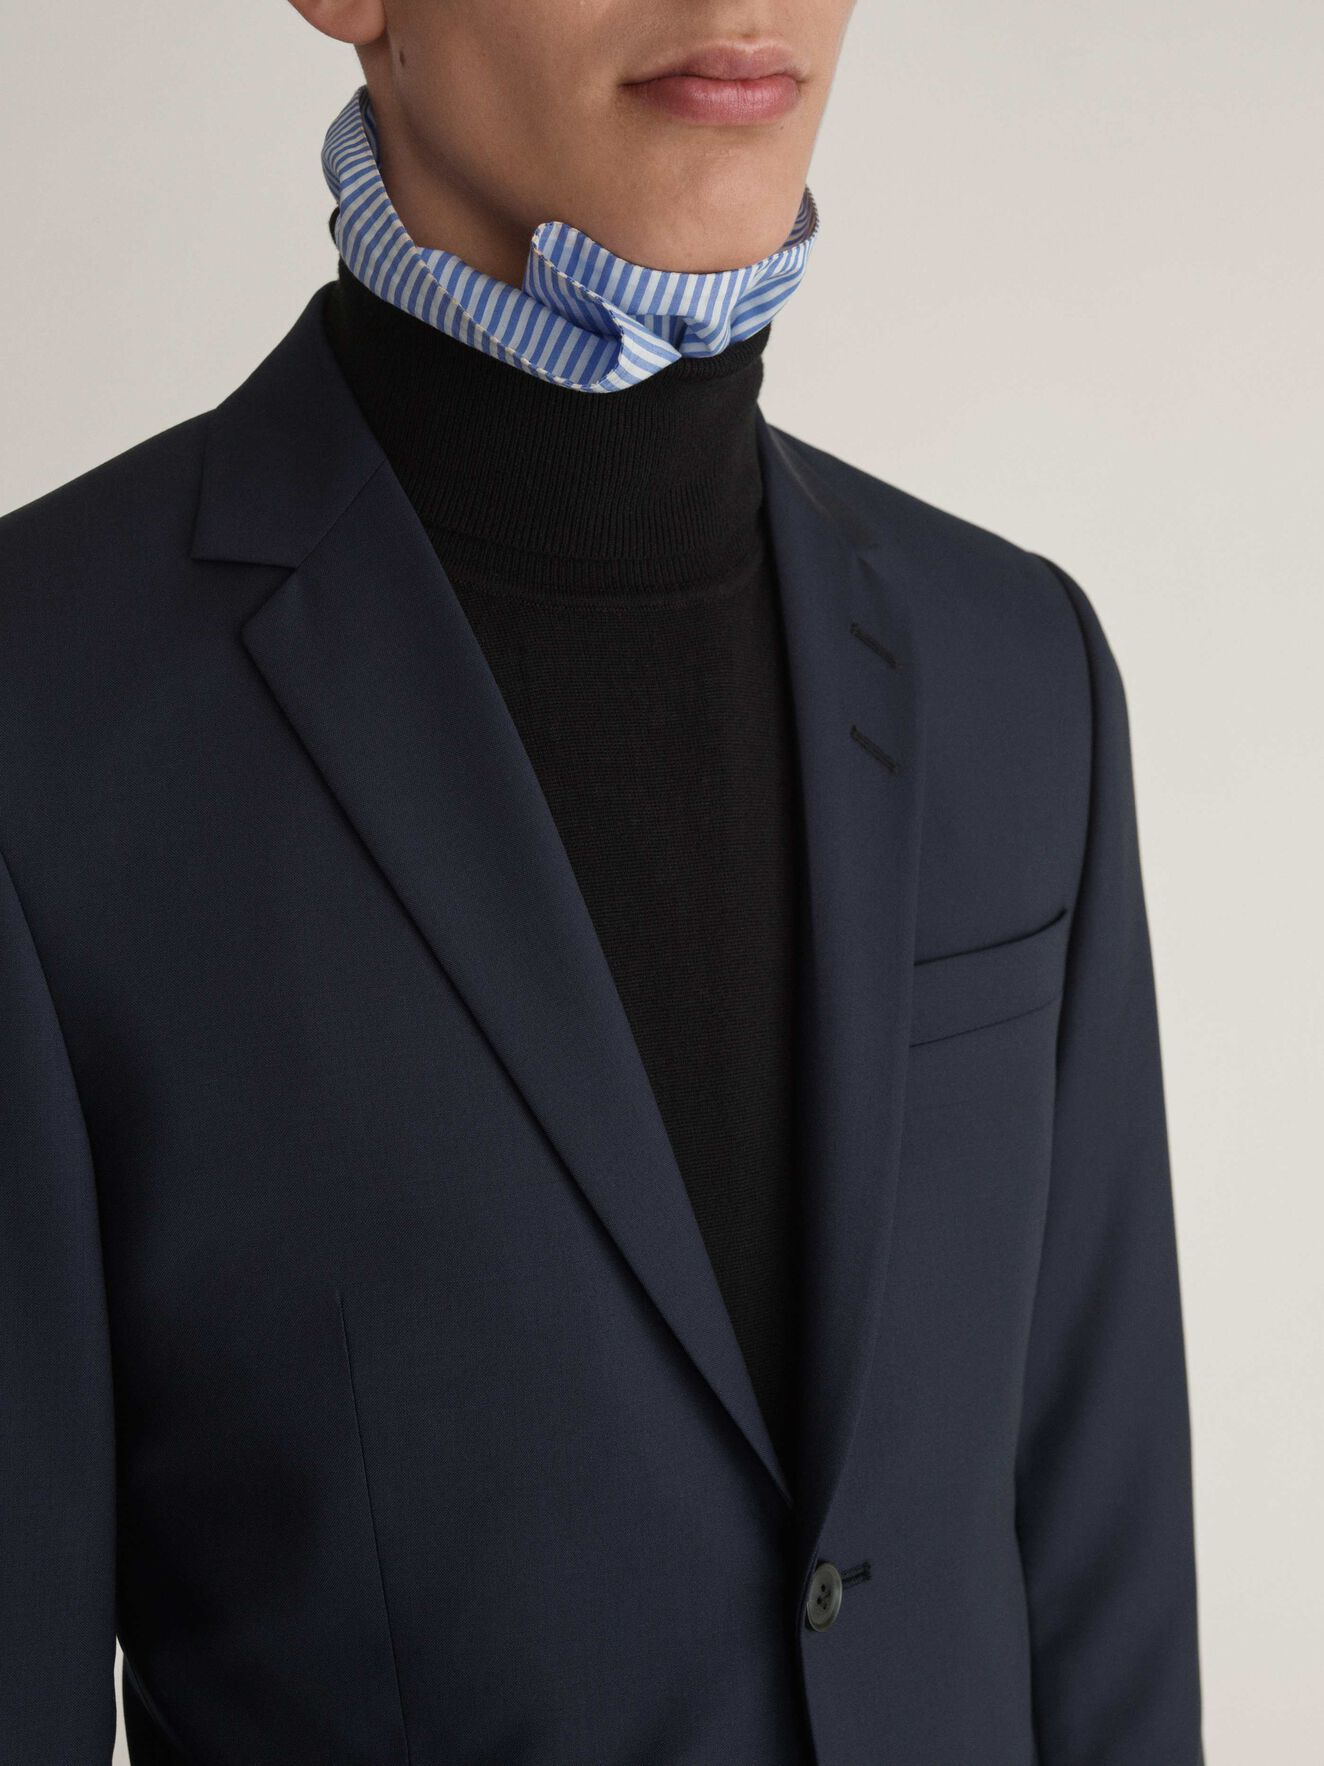 S.2018 Suit in Royal Blue from Tiger of Sweden